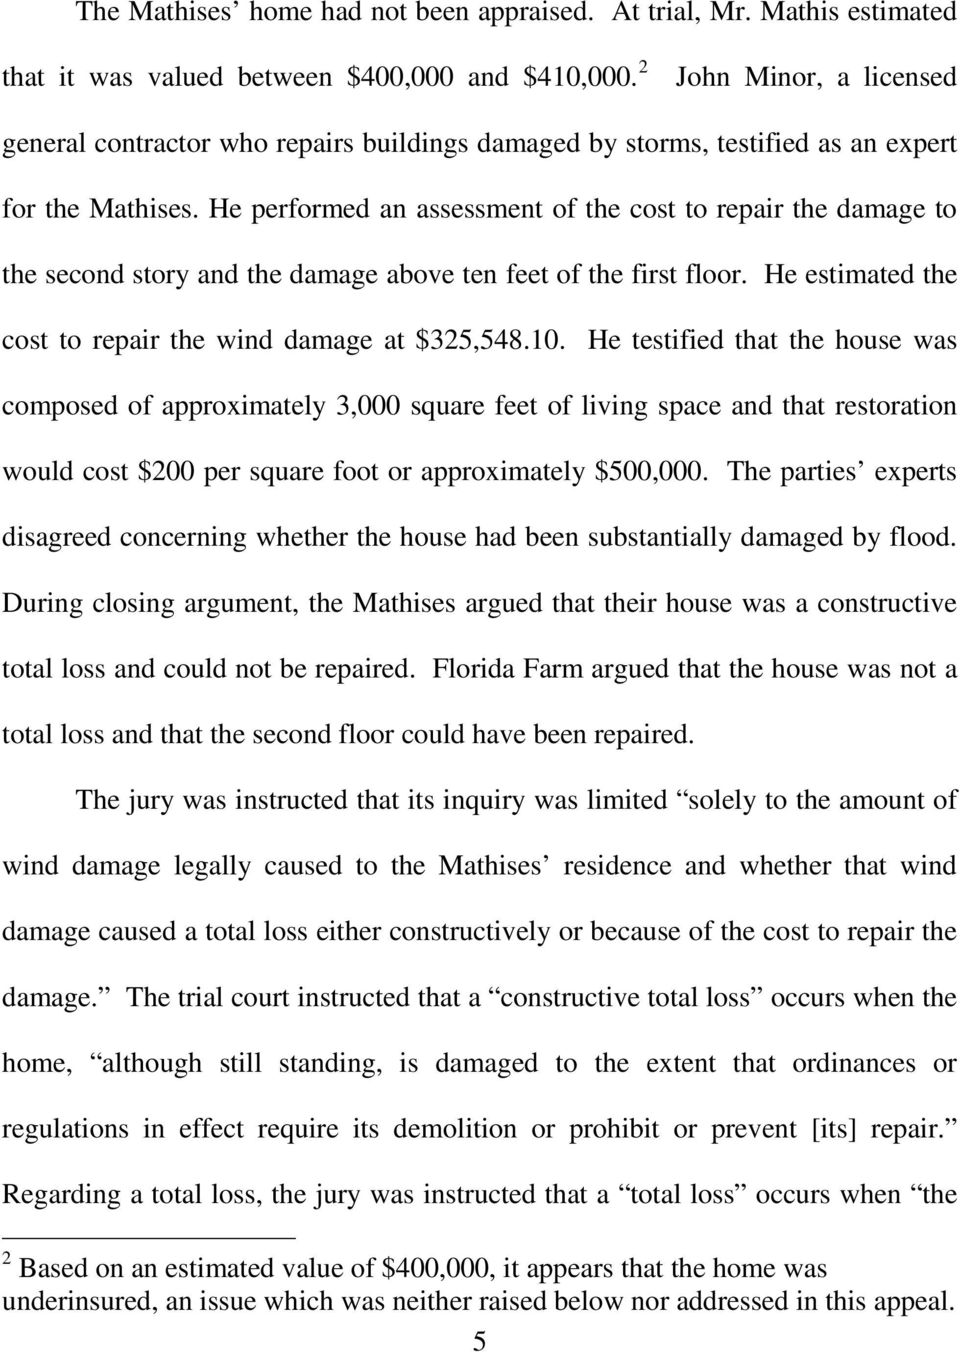 He performed an assessment of the cost to repair the damage to the second story and the damage above ten feet of the first floor. He estimated the cost to repair the wind damage at $325,548.10.